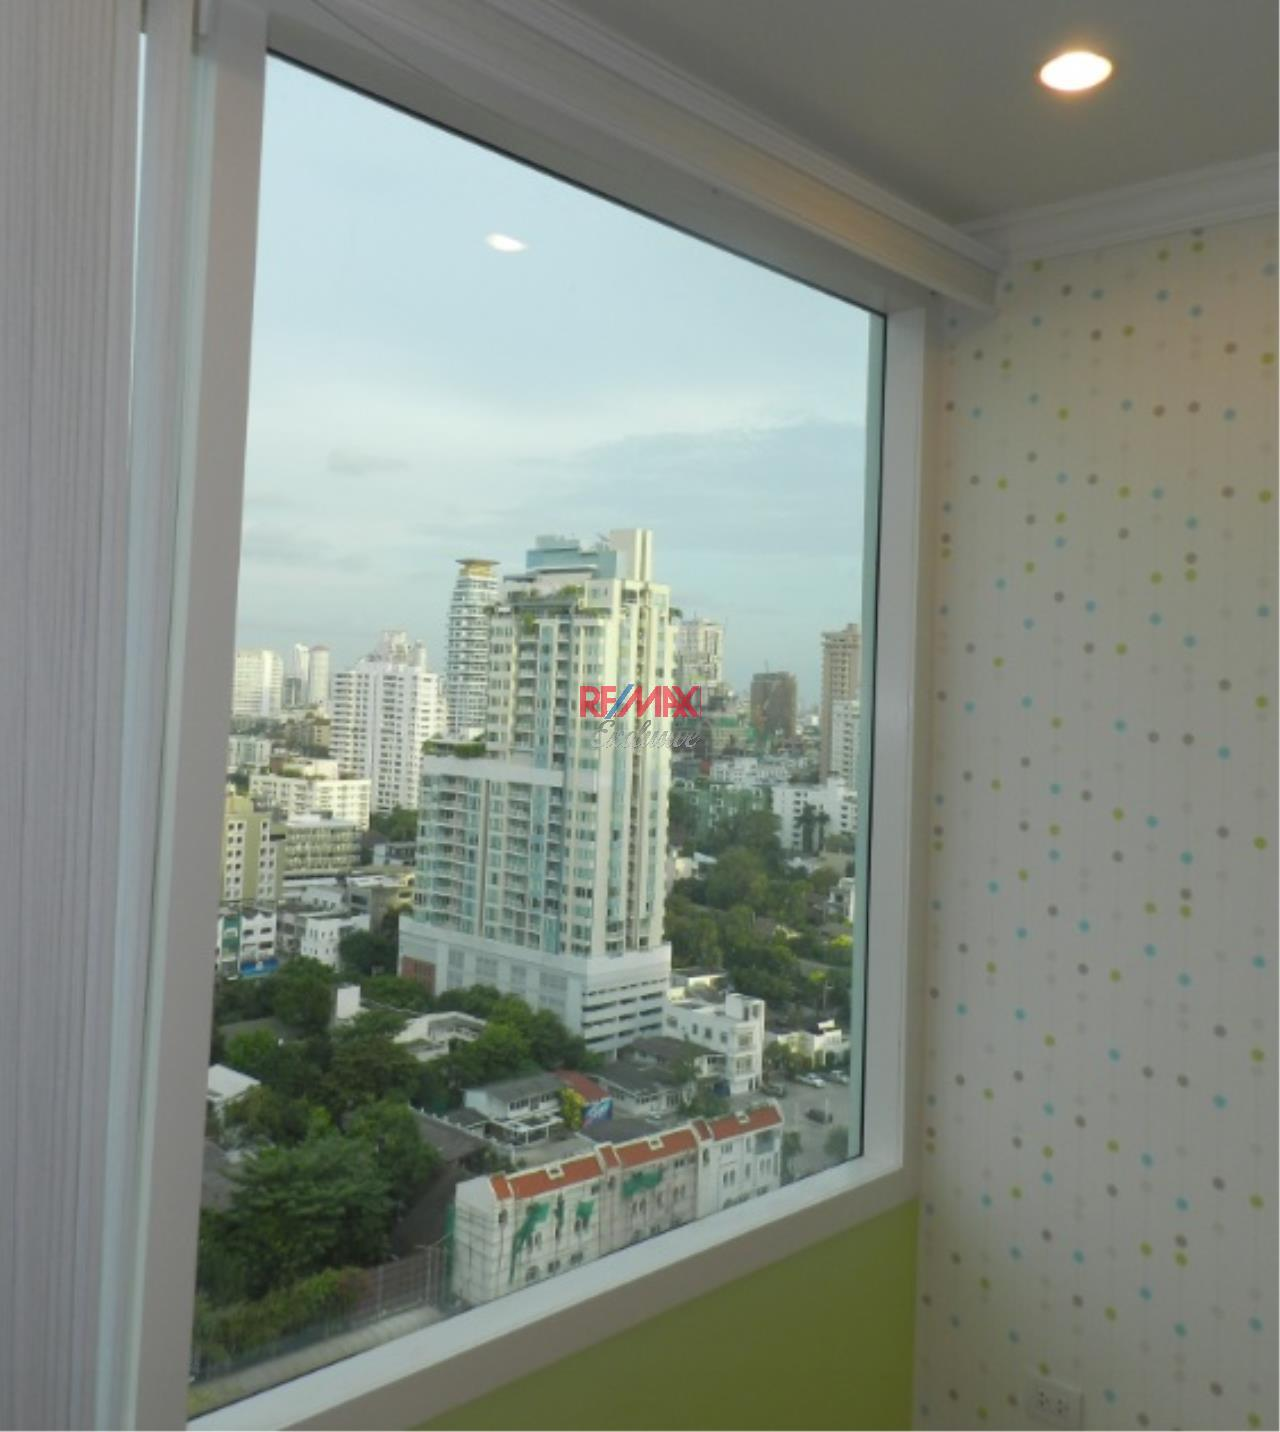 RE/MAX Exclusive Agency's The Wind Sukhumvit 23 3 Bedrooms With Magnificent View of Downtown Bangkok, For Rent and Sale!! 6